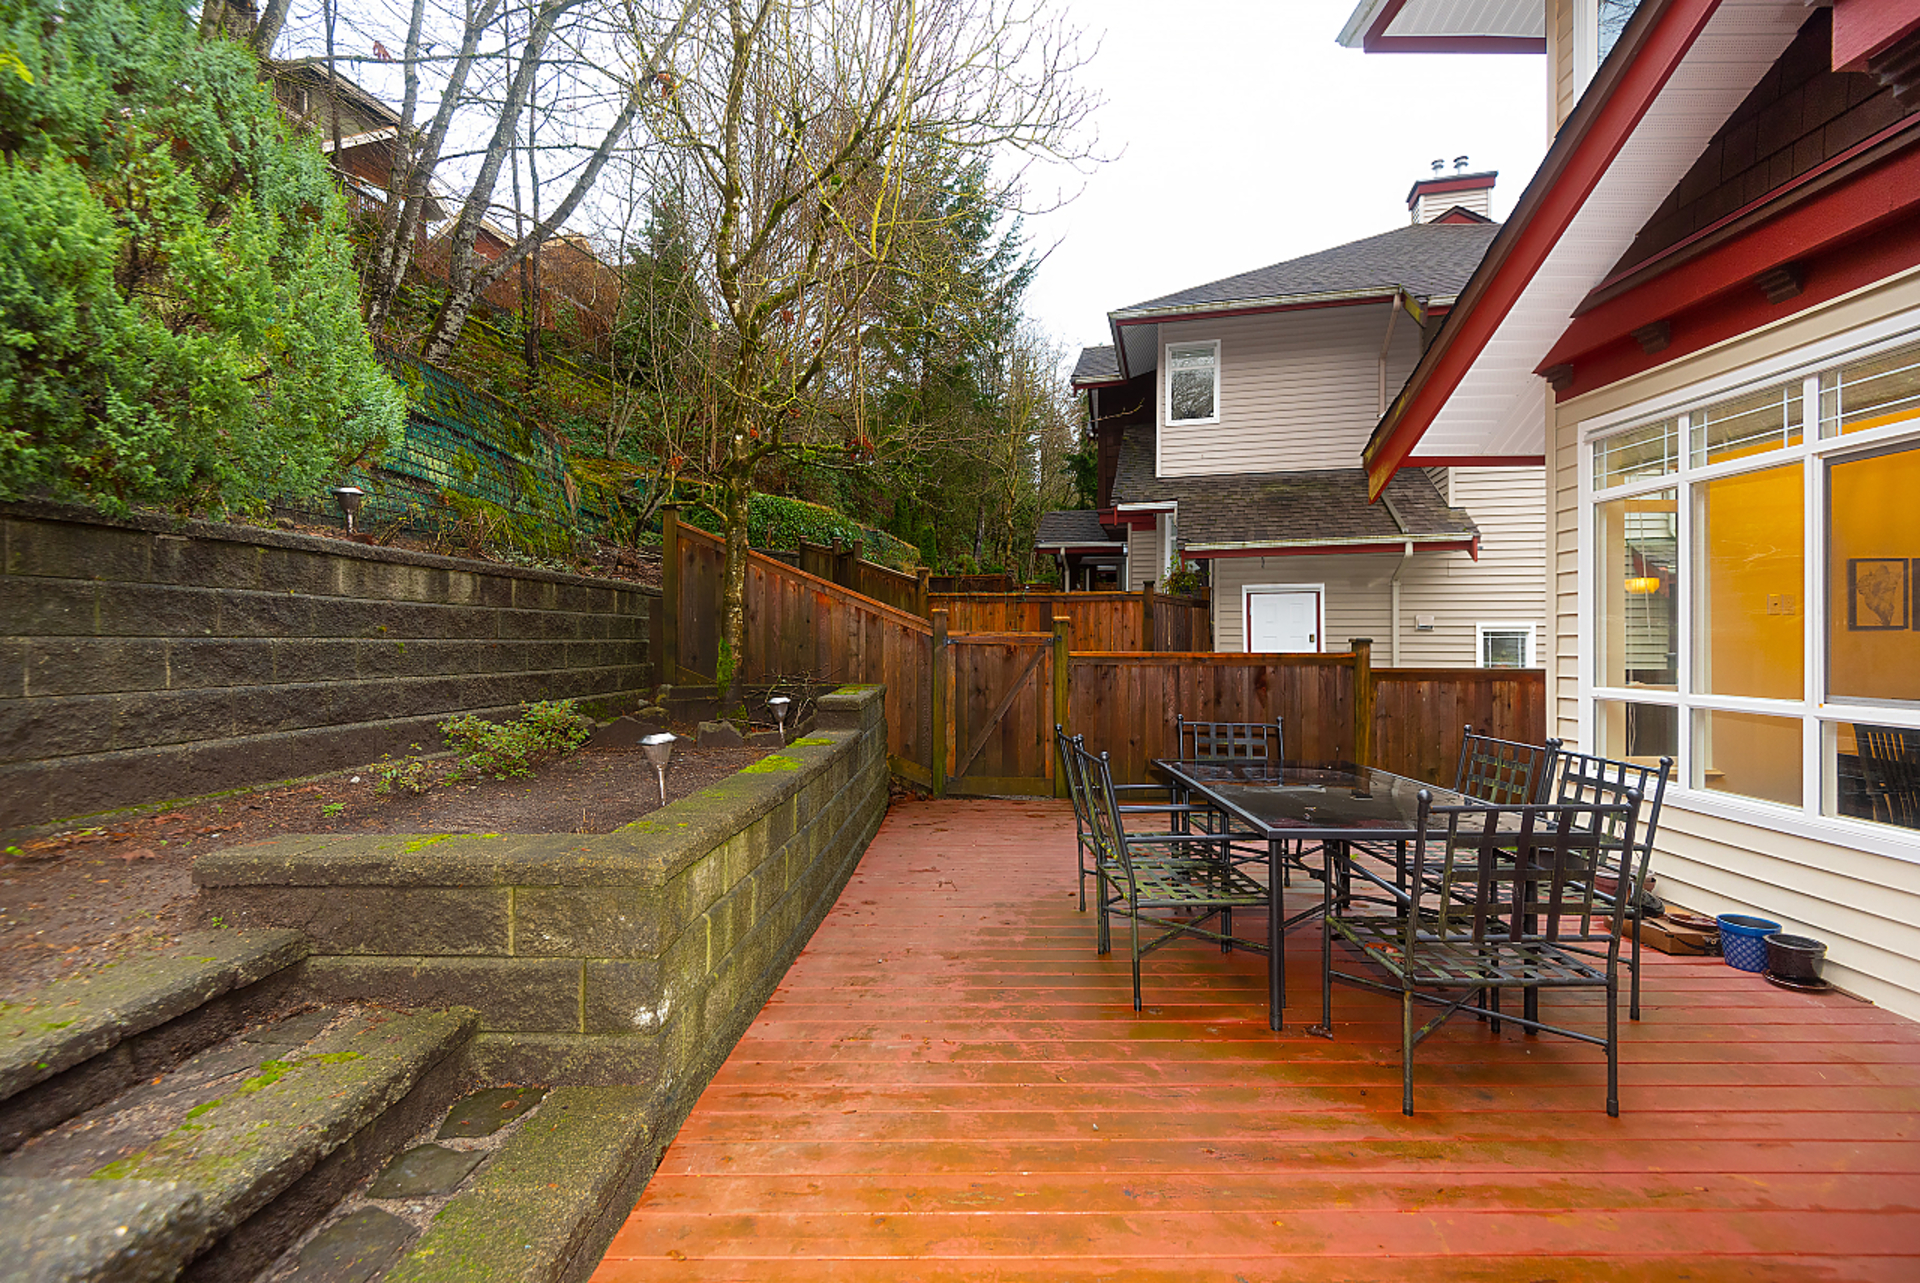 038 at 43 - 15 Forest Park Way, Heritage Woods PM, Port Moody